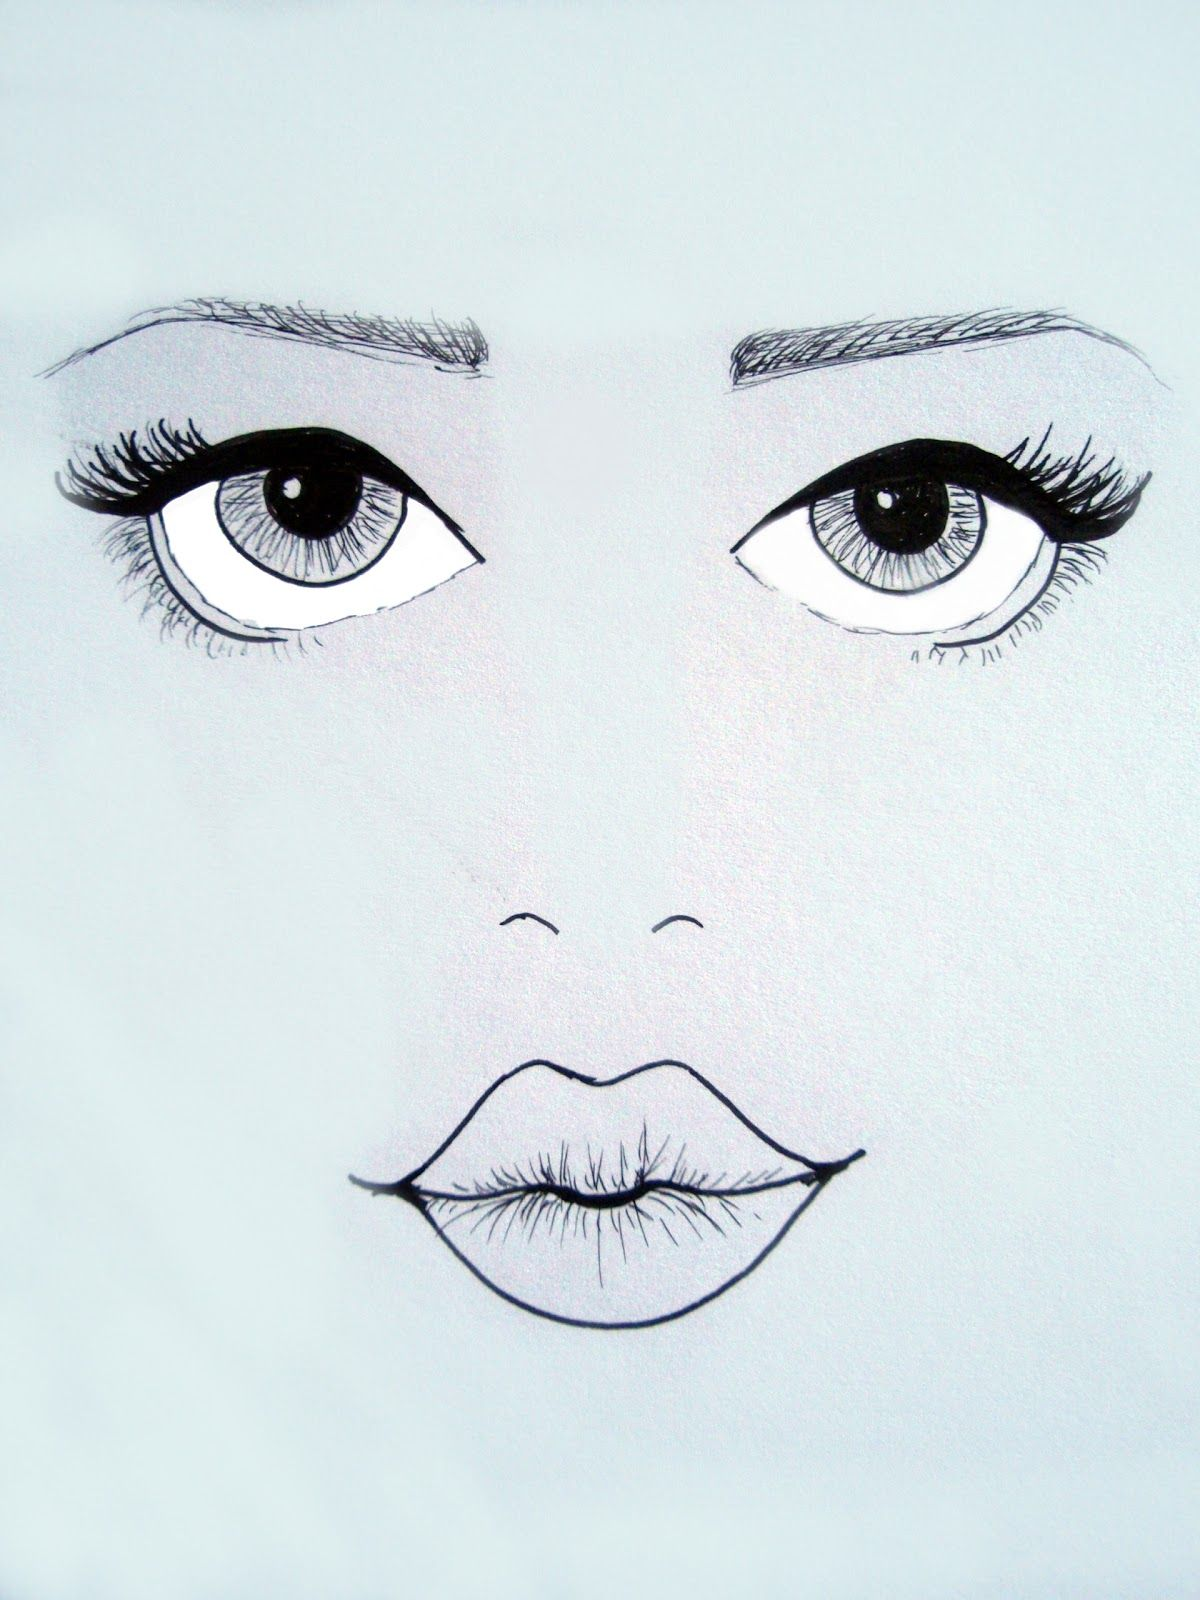 Pouty Lips Jpg 1200 1600 Lips Drawing Lips Sketch Drawings